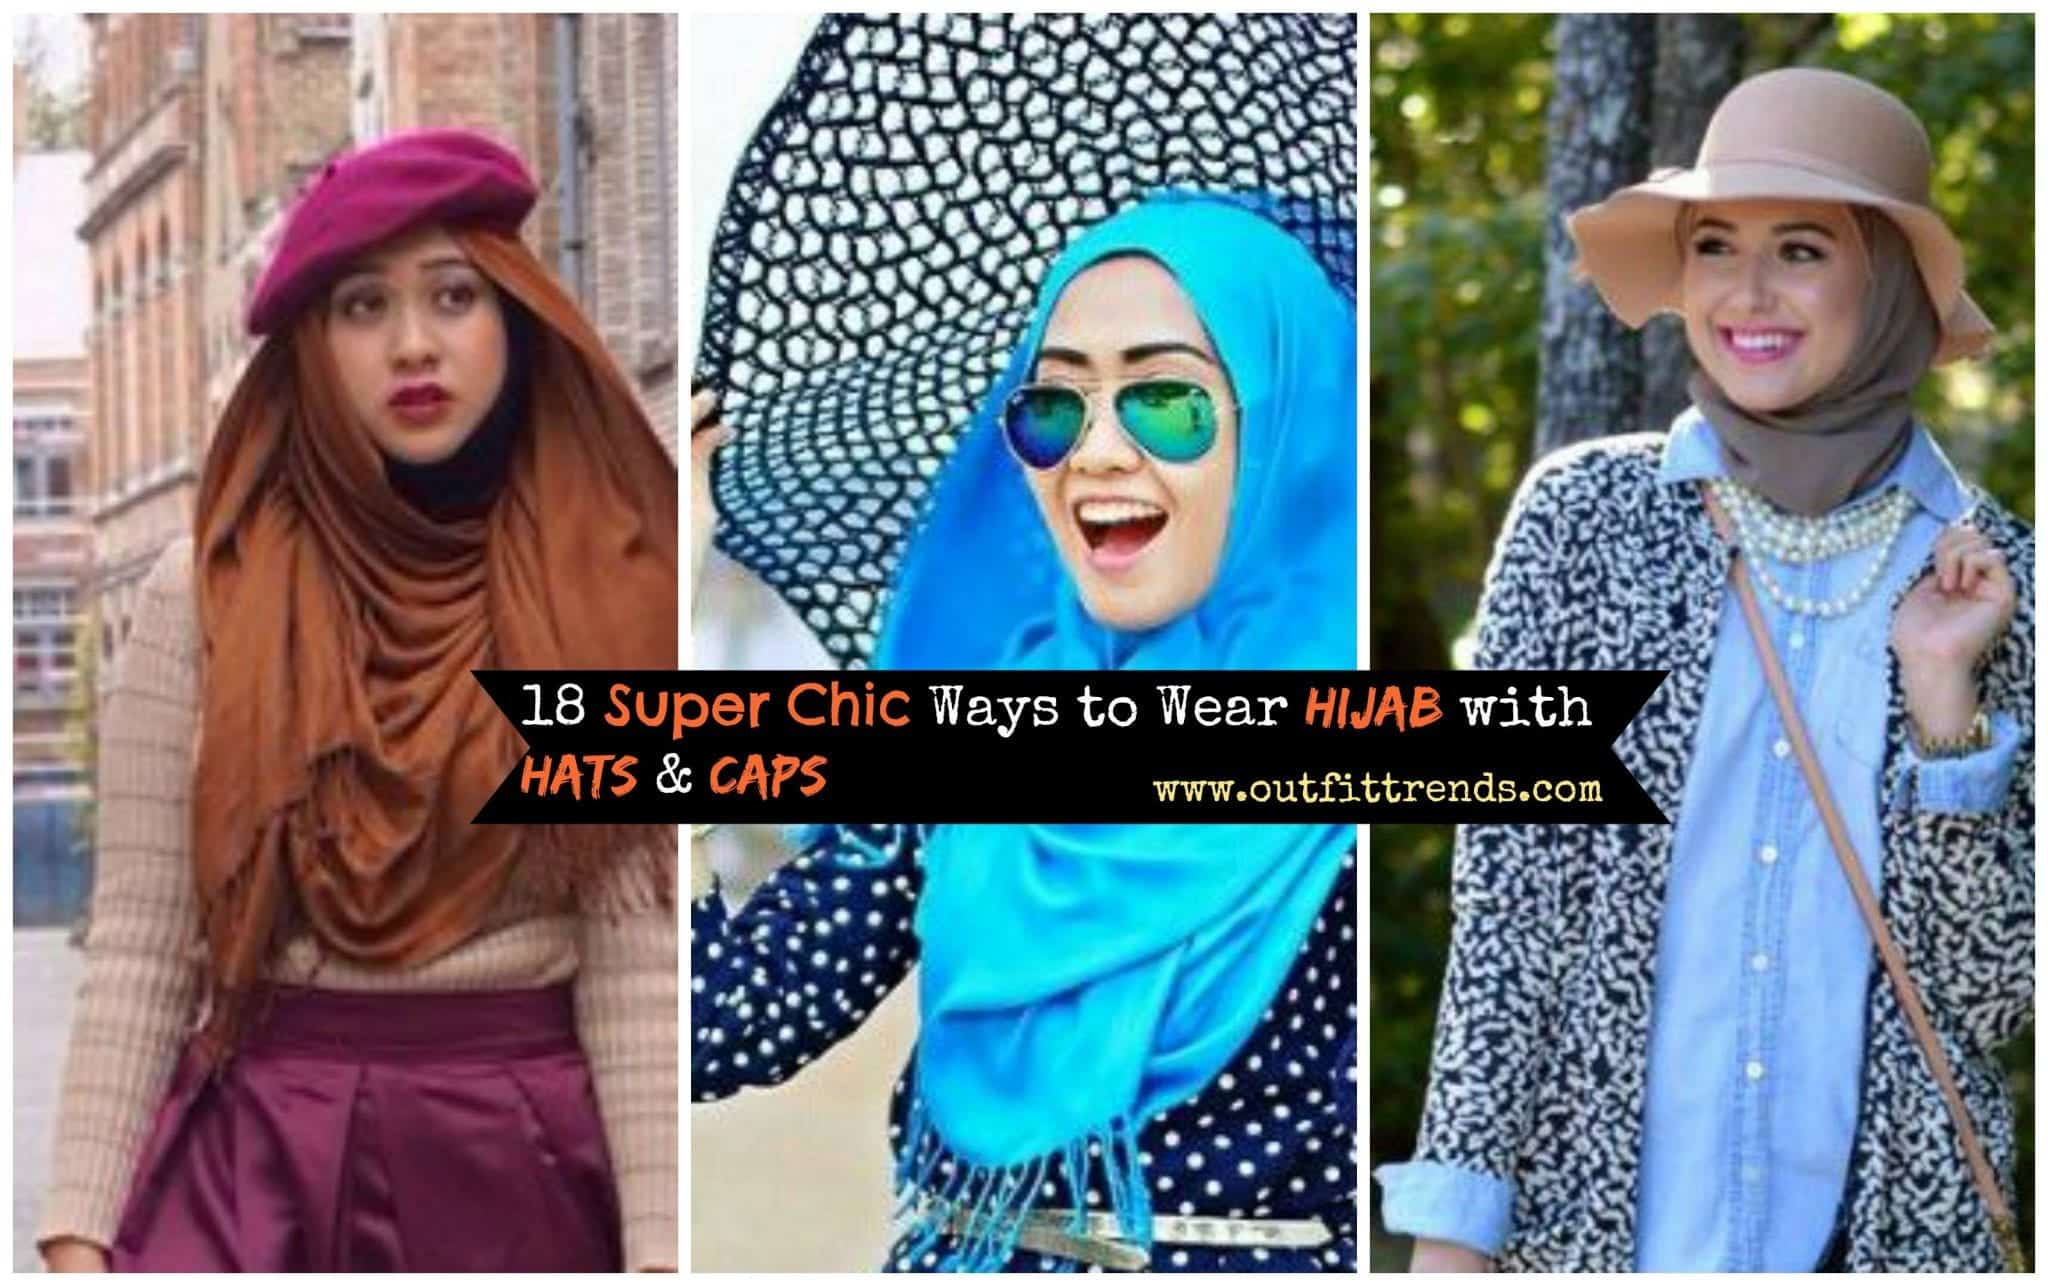 how-to-wear-hijab-with-hats-and-caps-1 Hijab with Hats Styles-18 Modest Ways to Wear Caps with Hijab